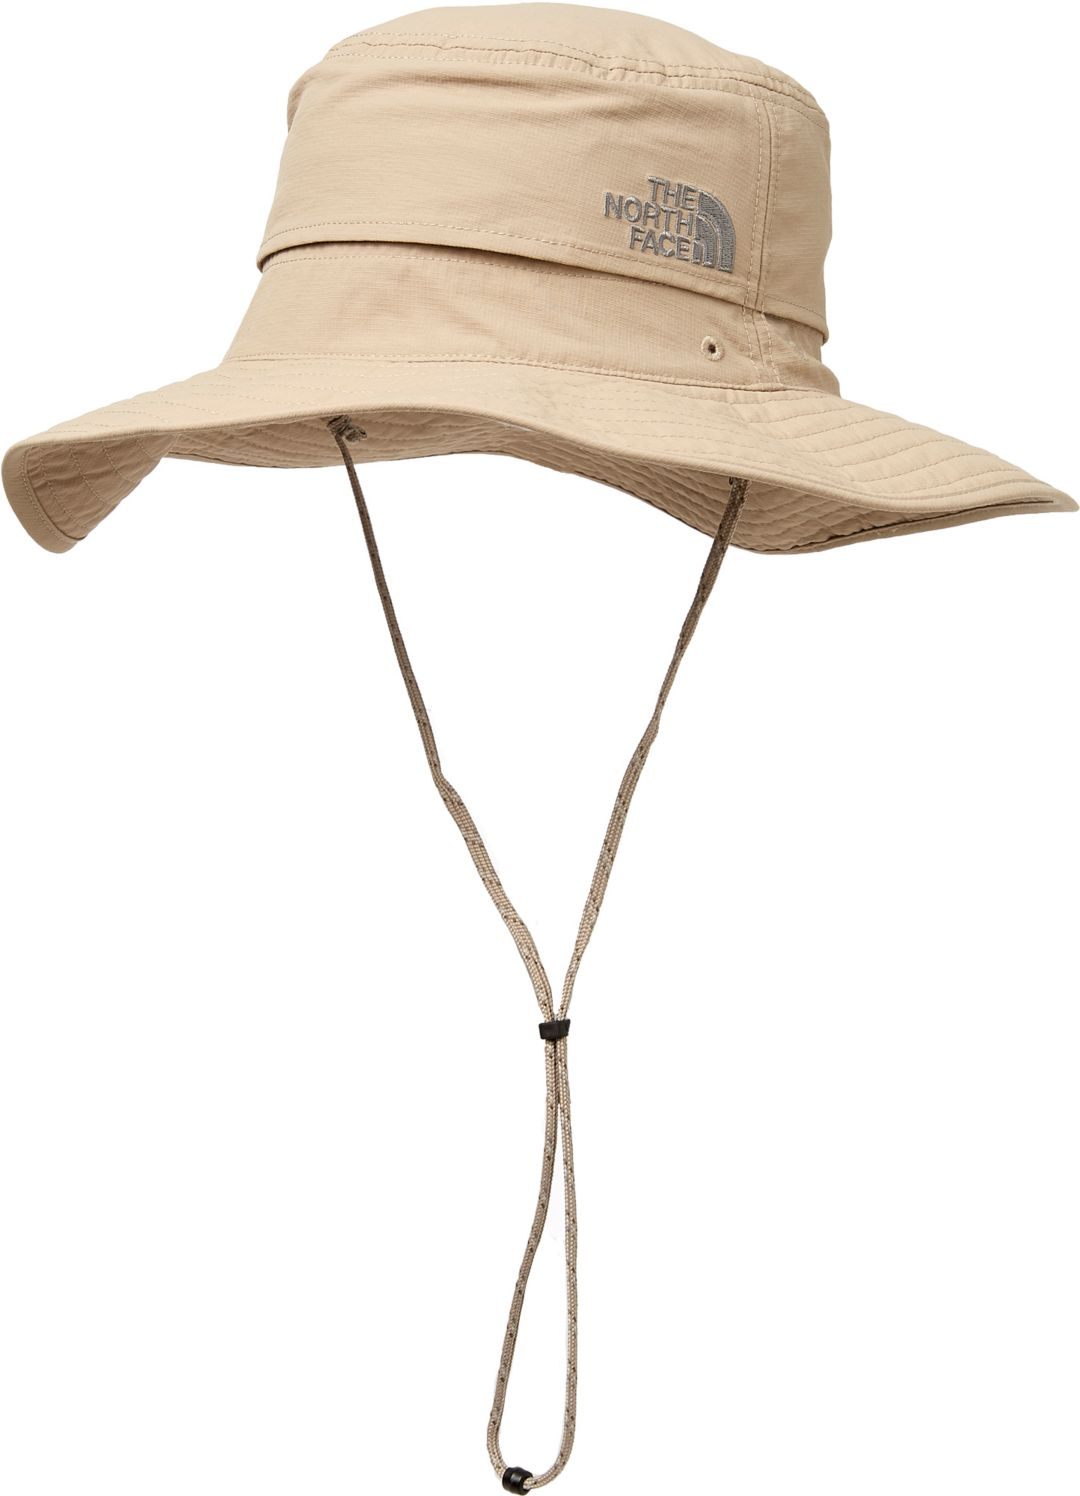 257c1a98b The North Face Men's Horizon Breeze Brimmer Hat